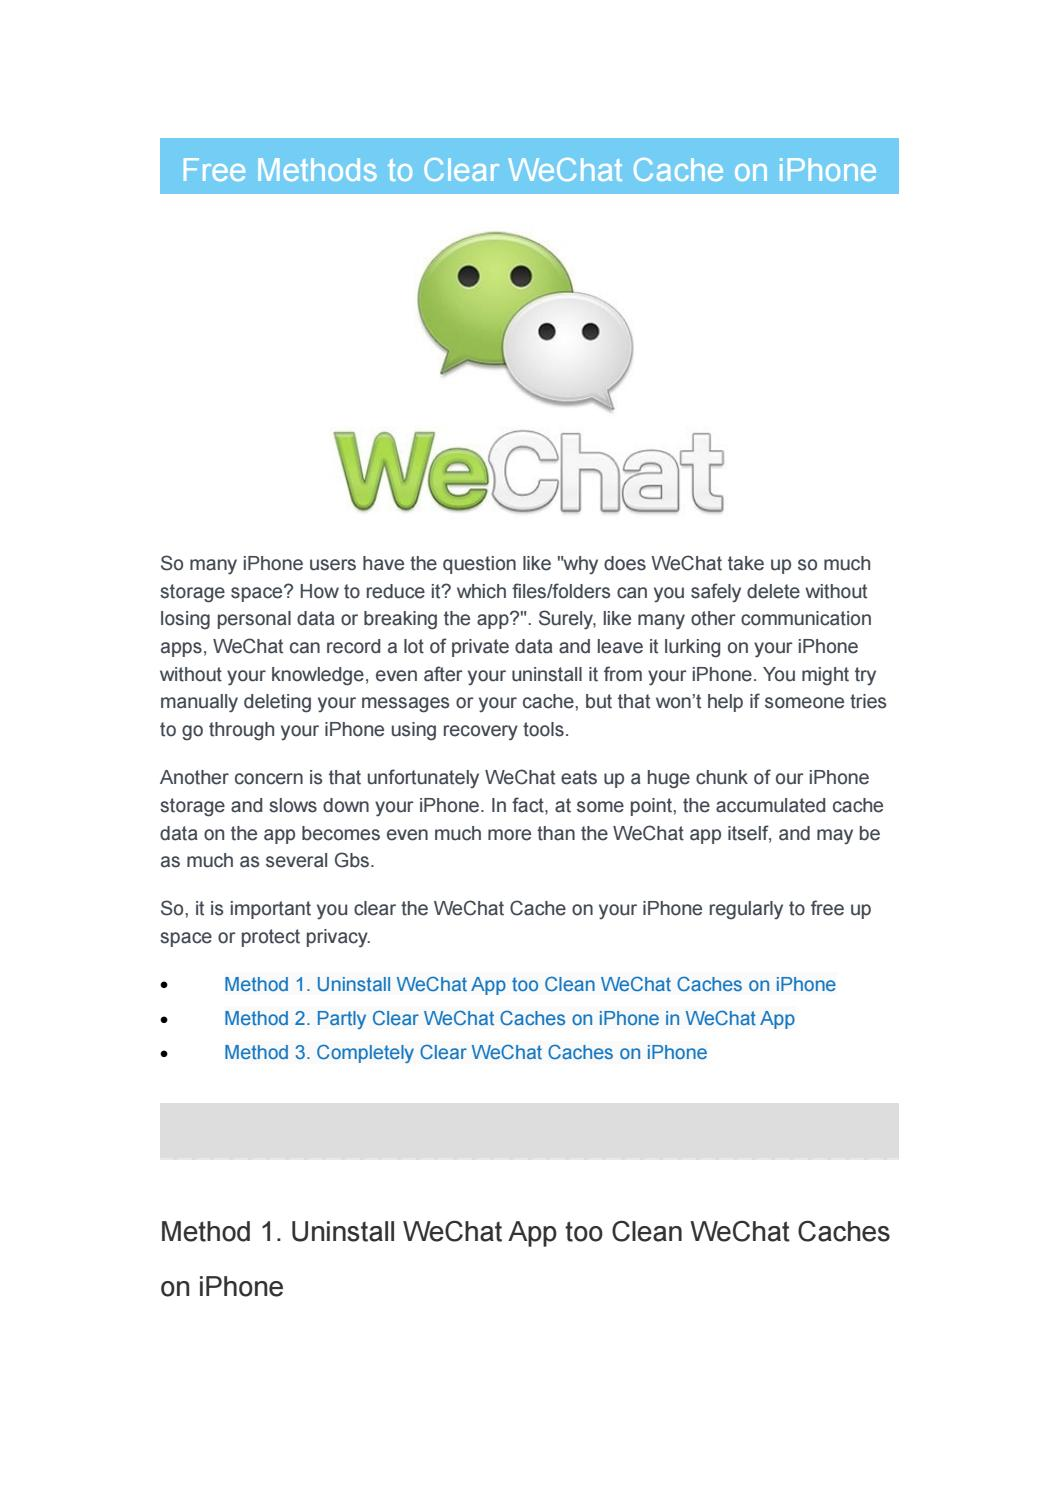 Free Methods to Clear WeChat Cache on iPhone by PhoneSkill